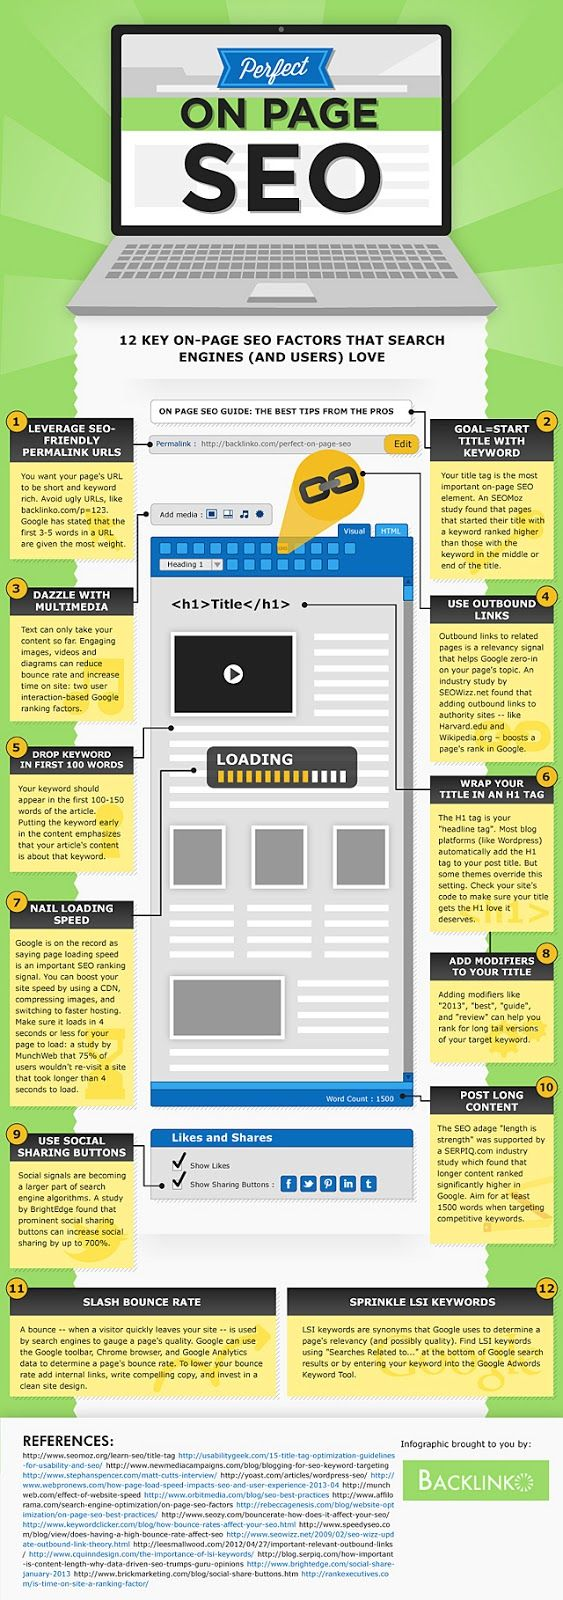 Perfect on page #SEO